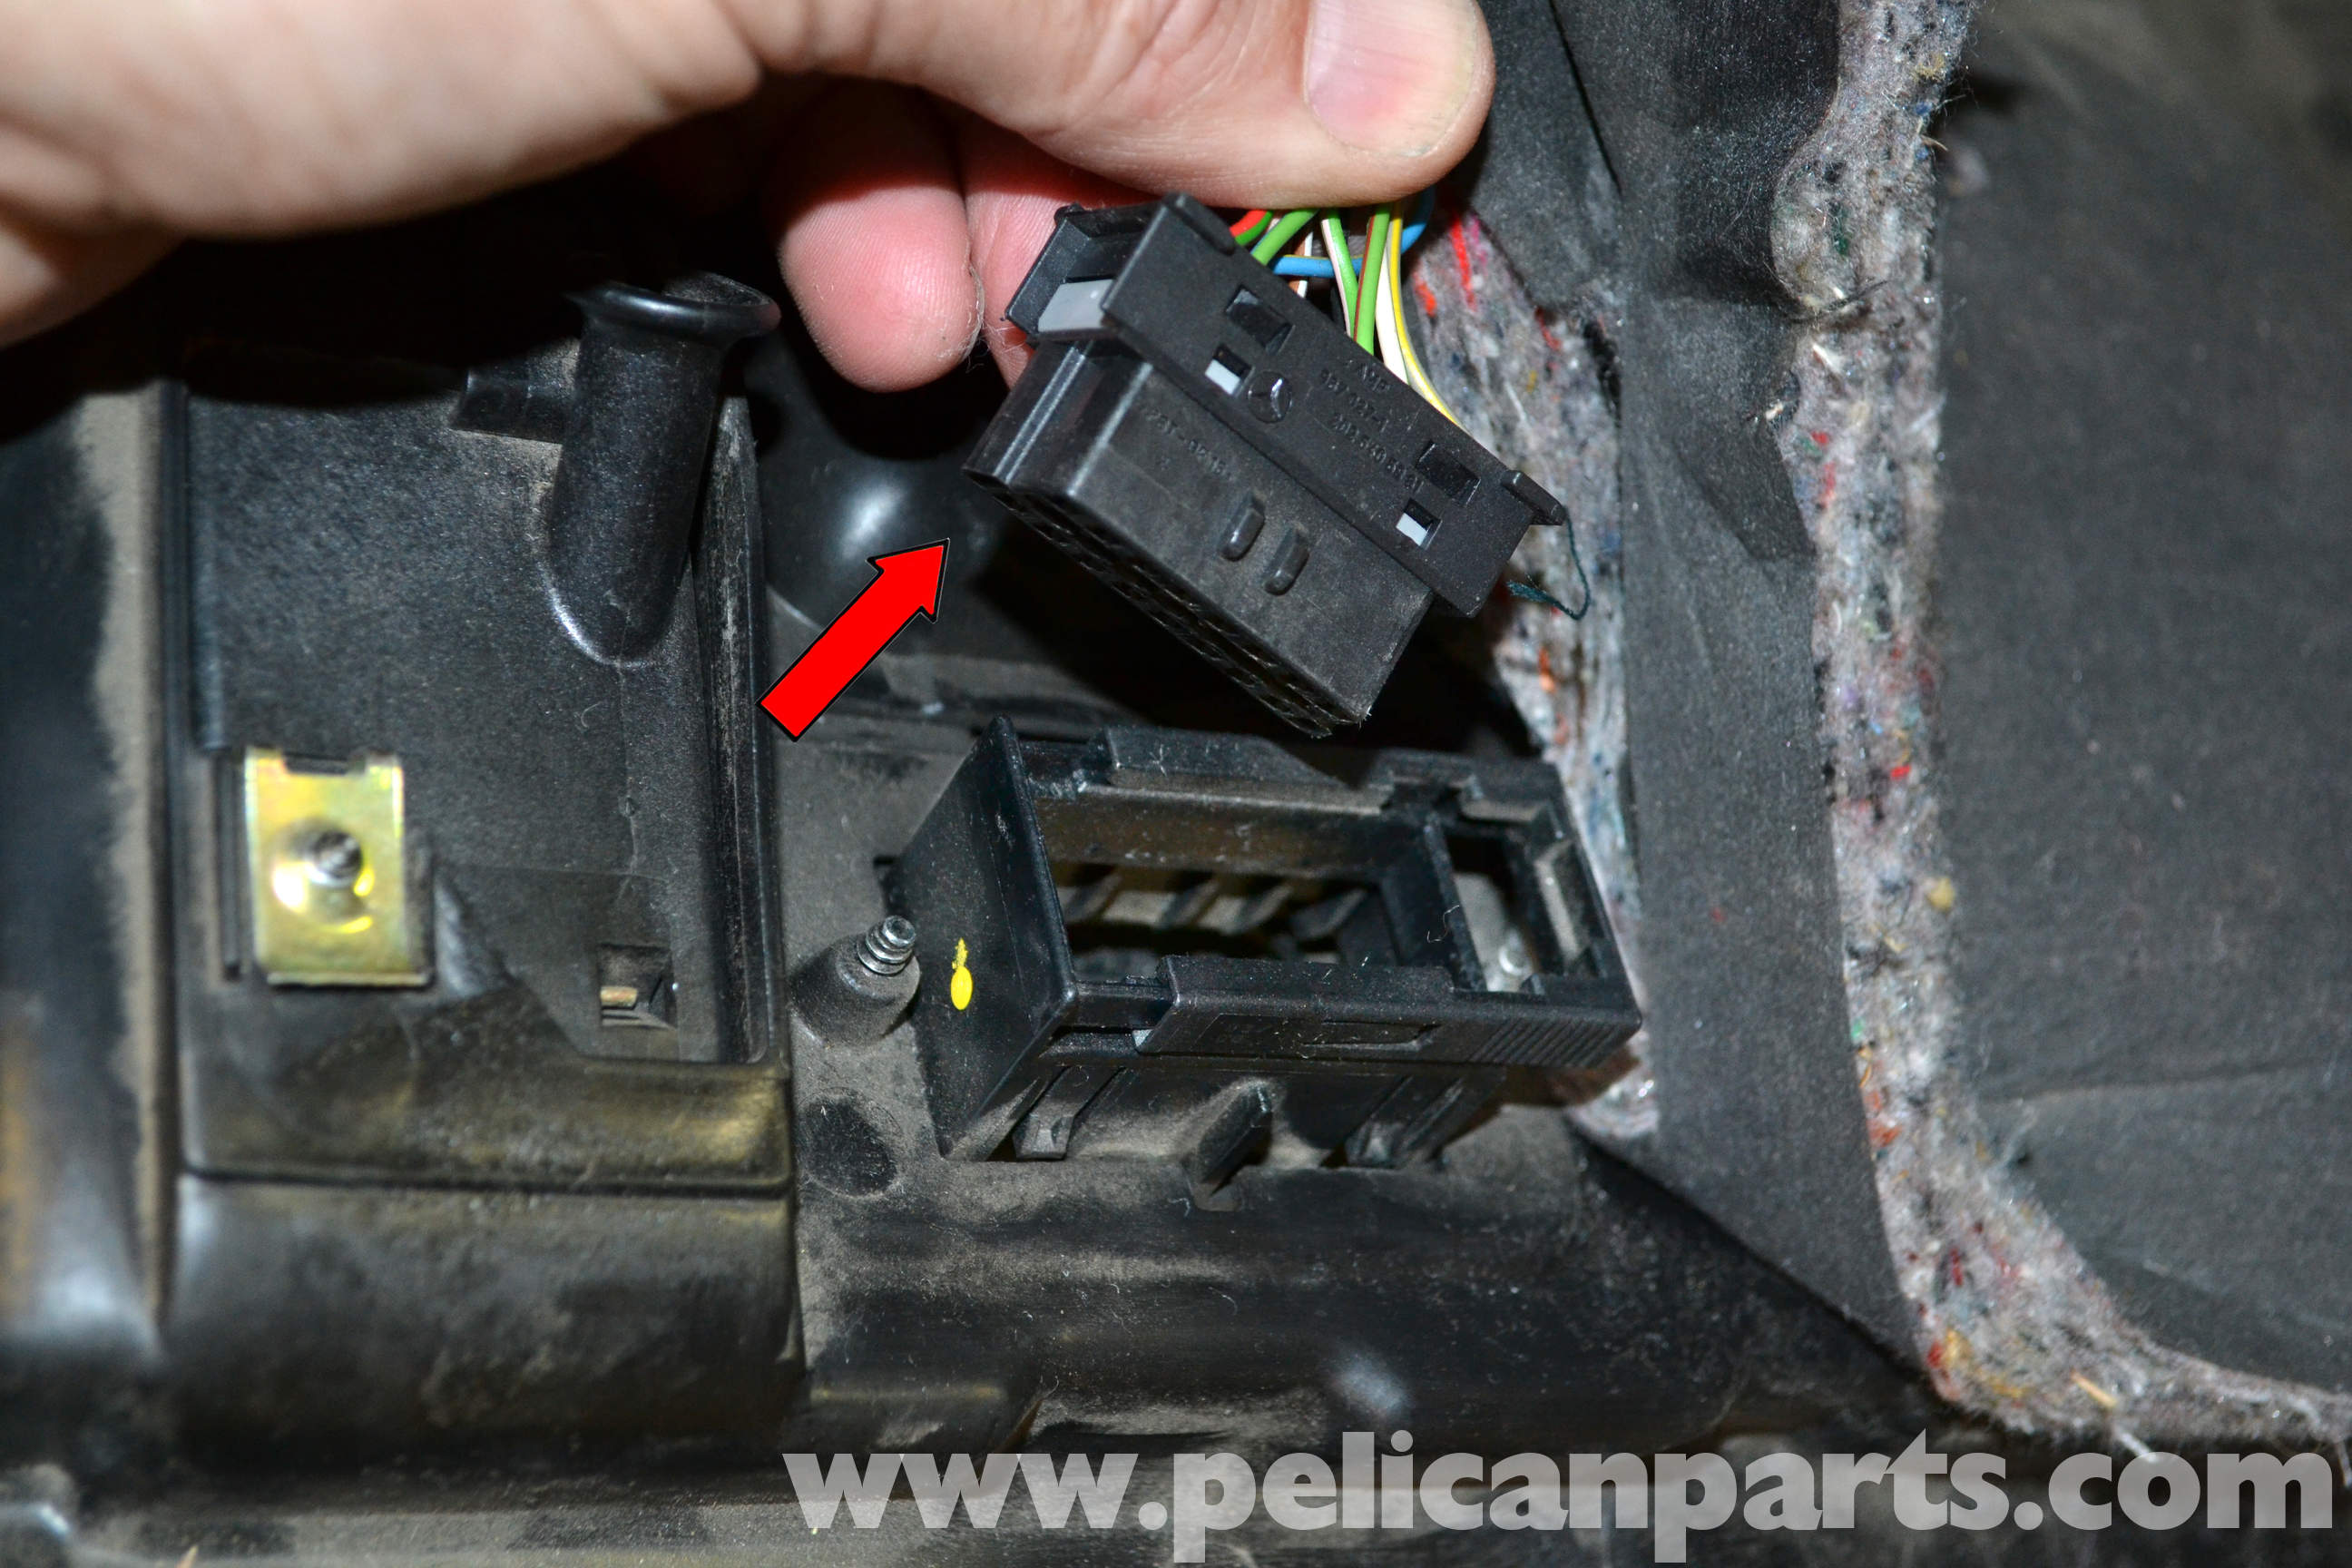 220 Volt Relay Switch Wiring Diagram Mercedes Benz W203 Lower Driver Side Dash Removal 2001